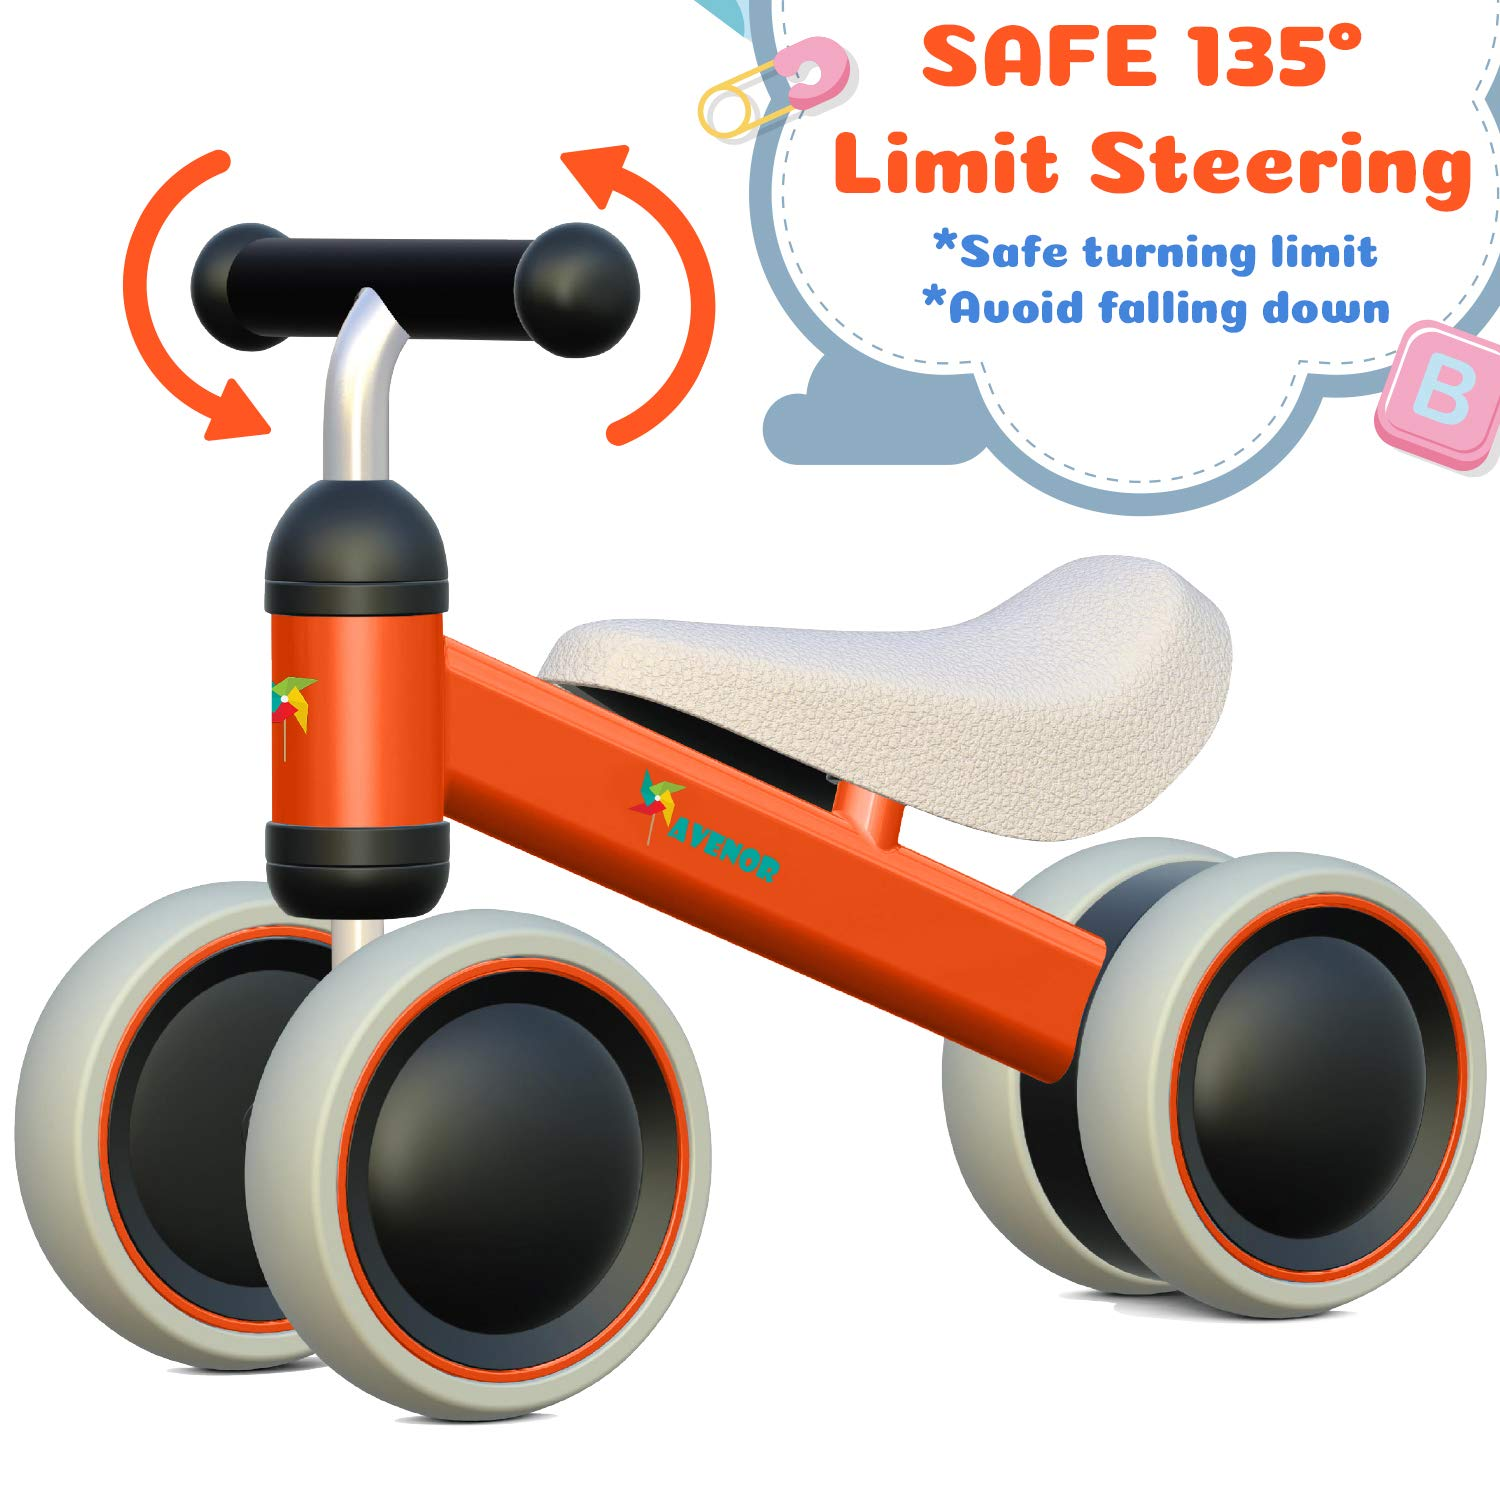 Avenor Baby Balance Bike - Baby Bicycle for 6-24 Months, Sturdy Balance Bike for 1 Year Old, Perfect as First Bike or Birthday Gift, Safe Riding Toys for 1 Year Old Boy Girl Ideal Baby Bike (Orange) by Avenor (Image #4)